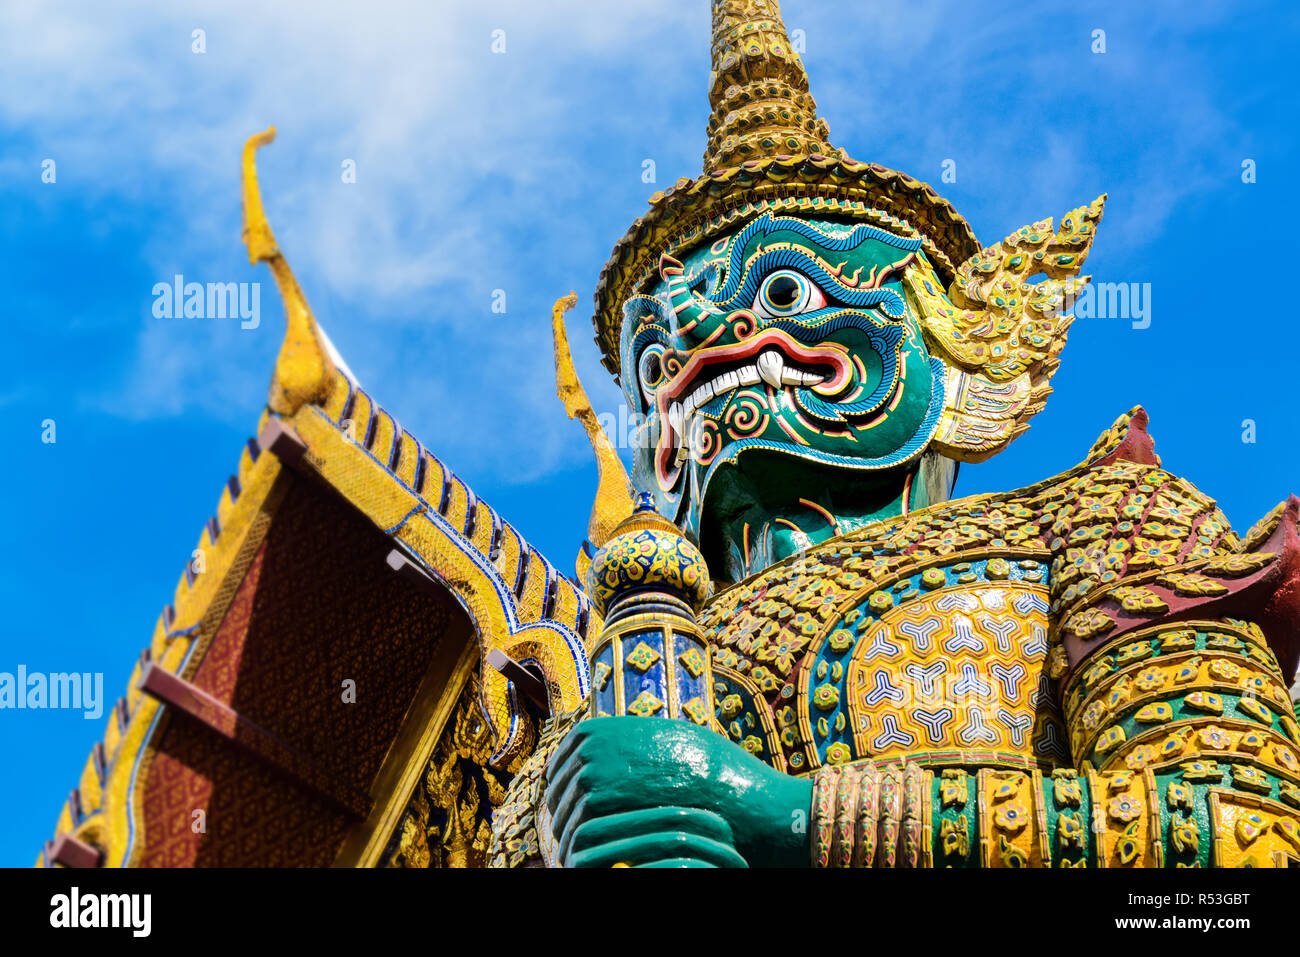 Demon Guardian statue at the grand palace Thailand  from free royalty photo place area. - Stock Image